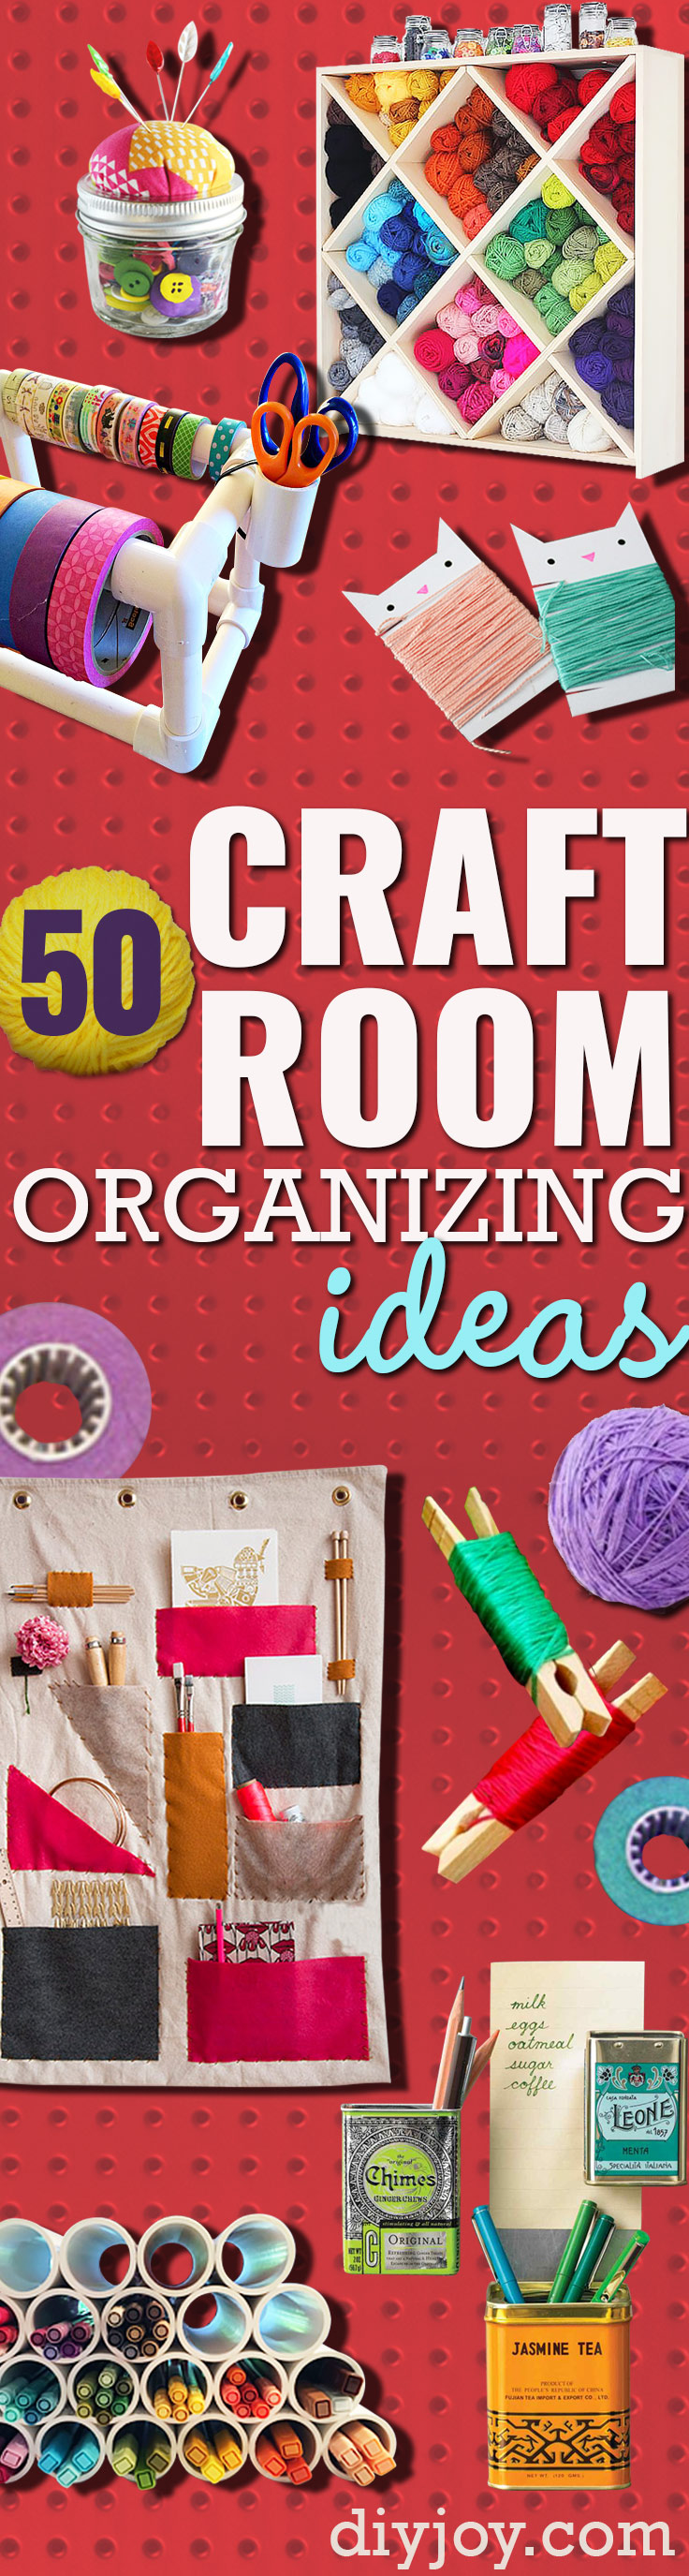 50 clever craft room organization ideas diy craft room ideas and craft room organization projects cool ideas for do it solutioingenieria Images